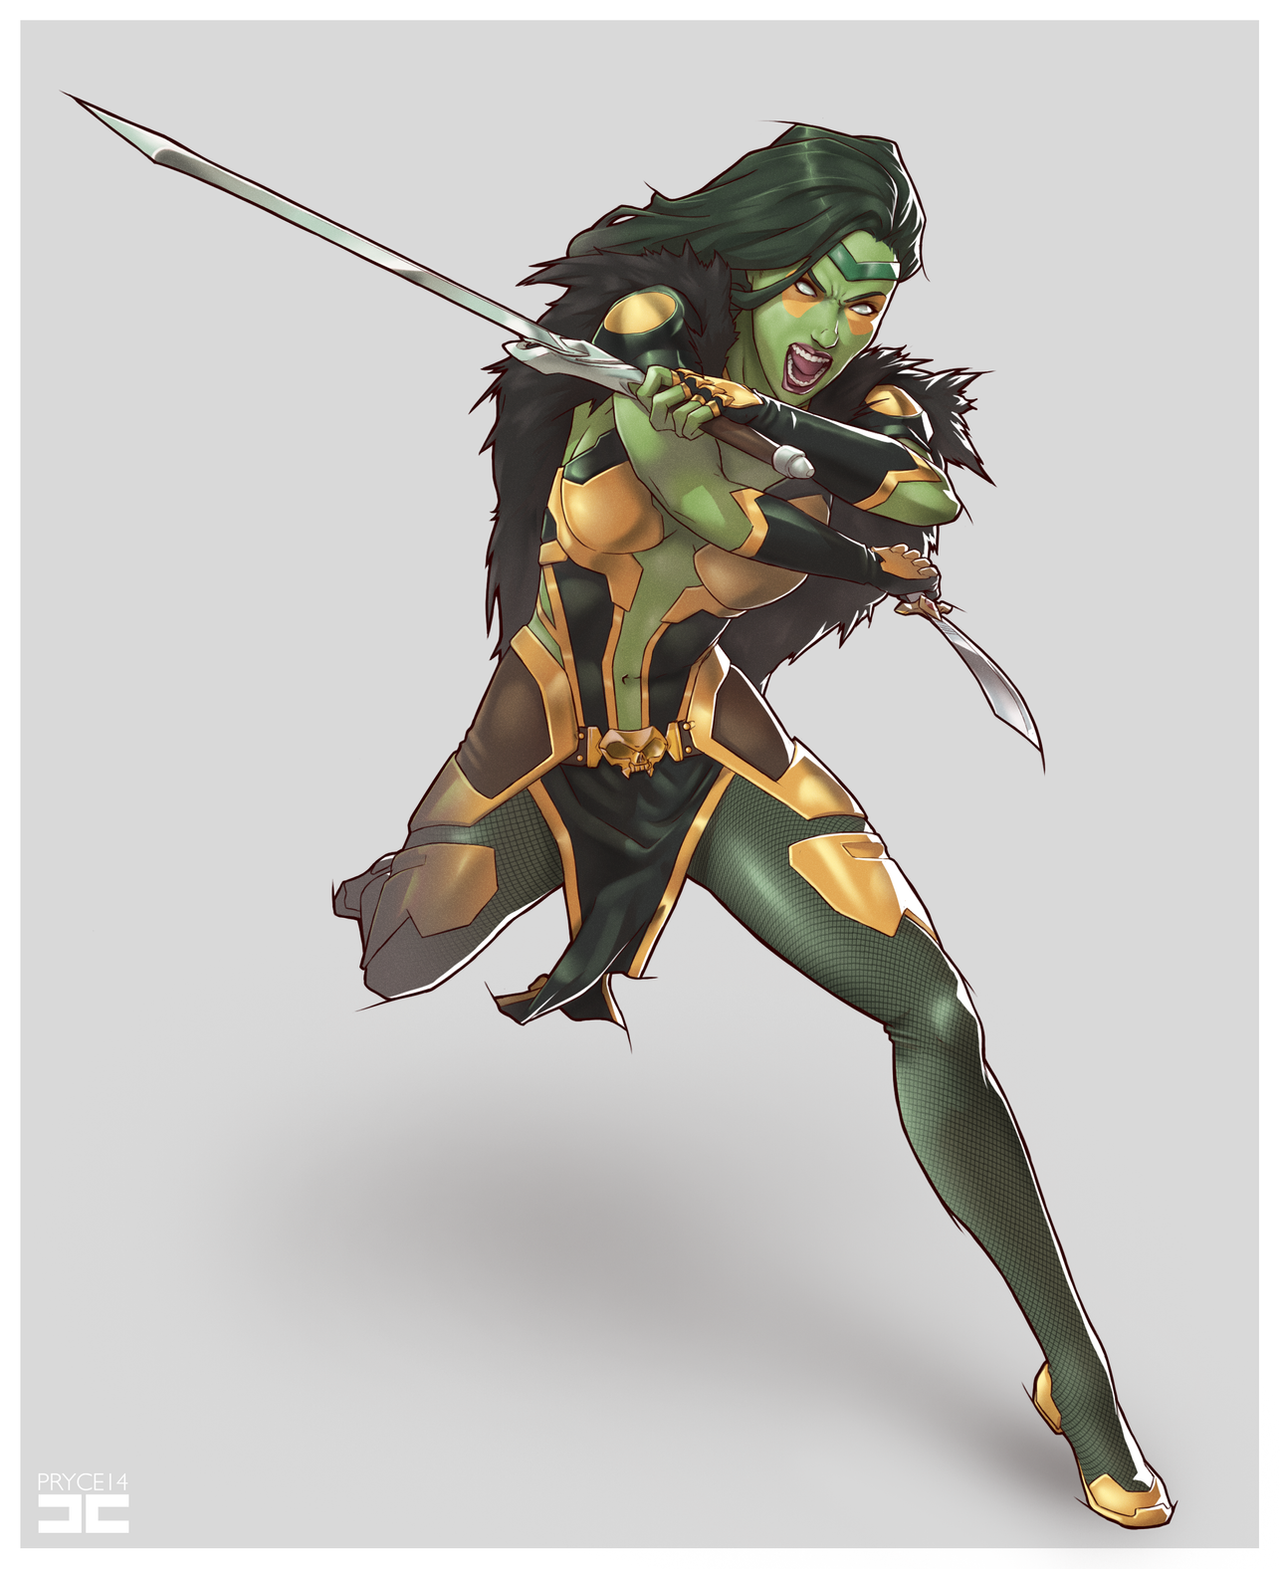 GAMORA by Pryce14